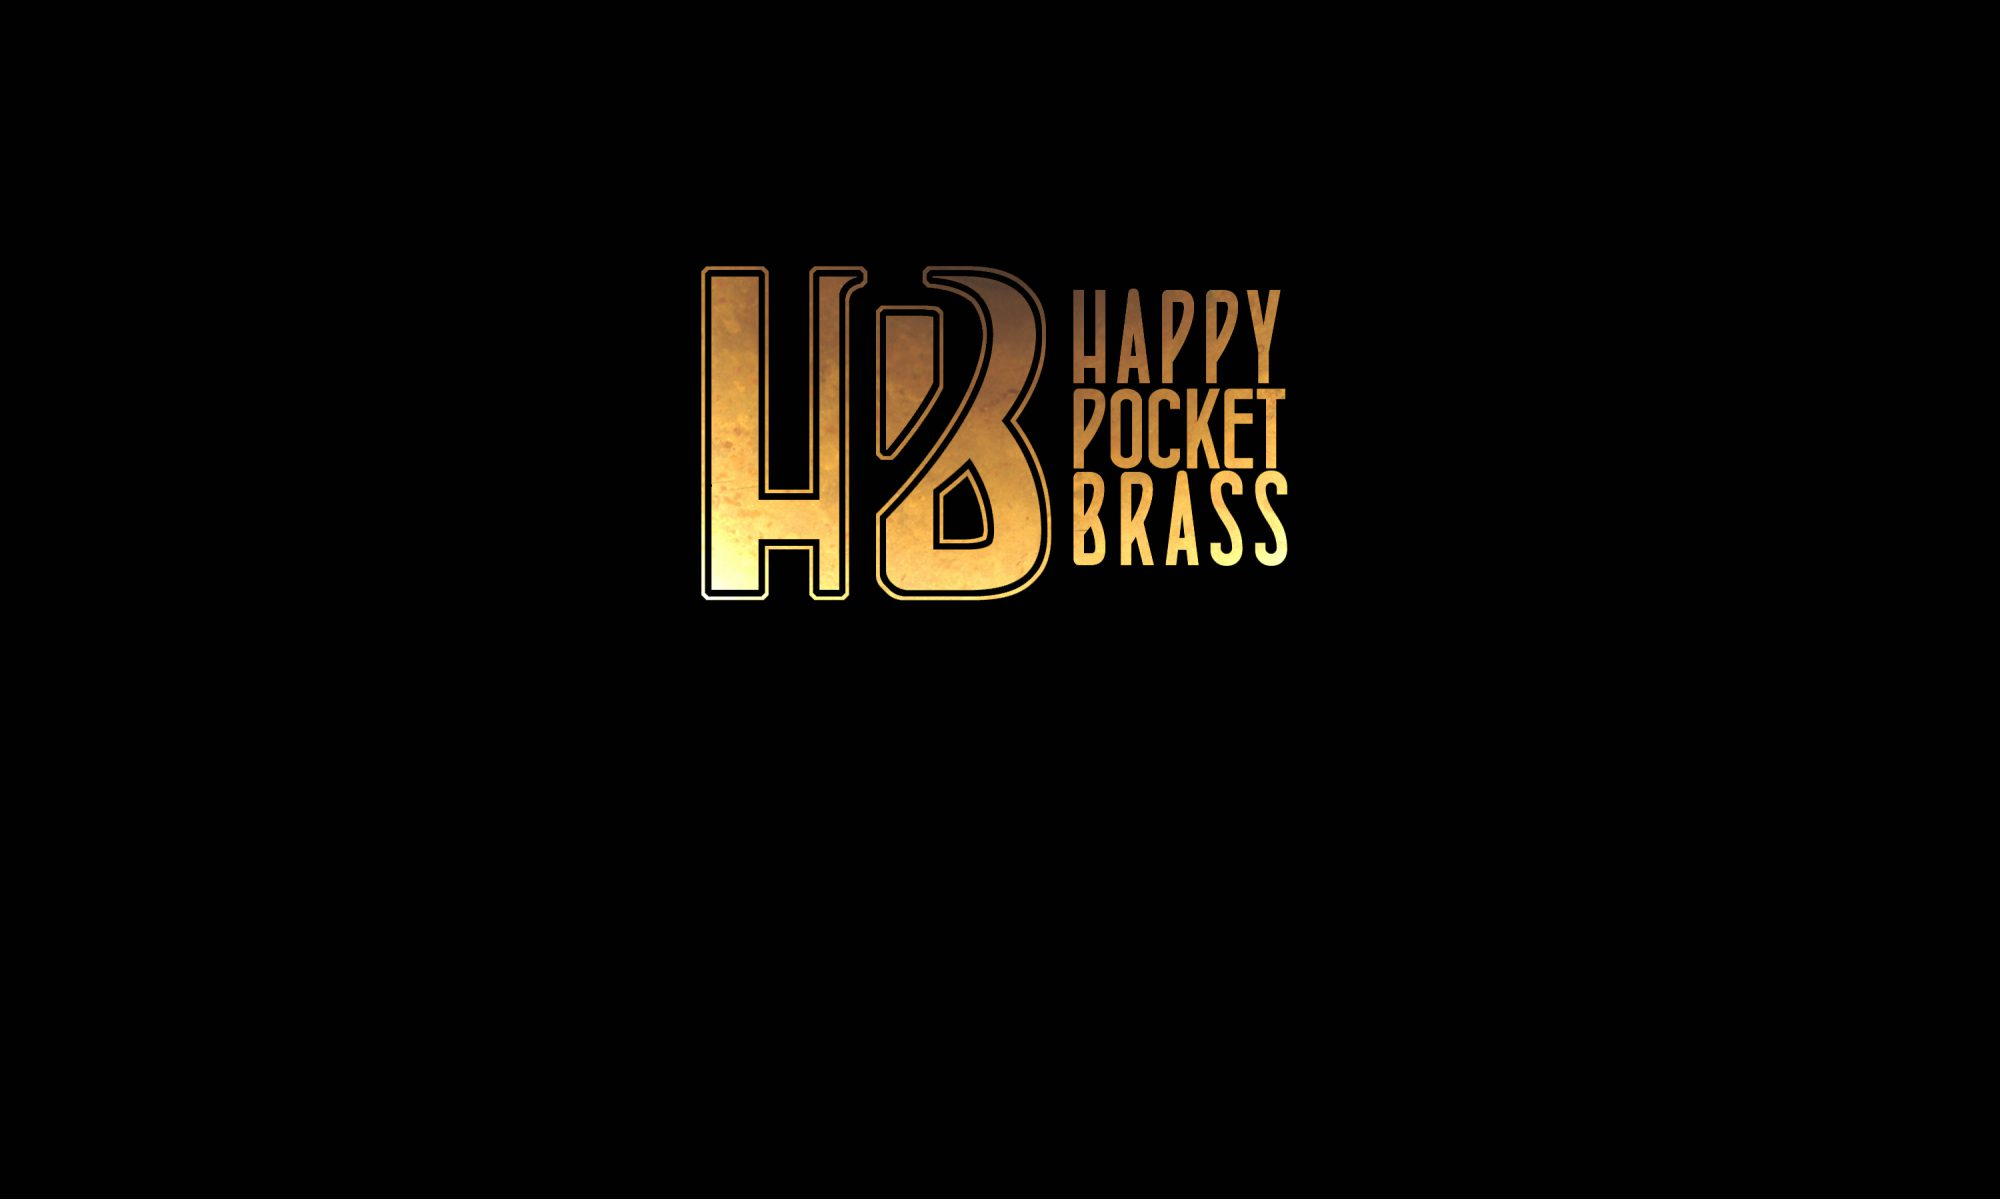 Happy Pocket Brass